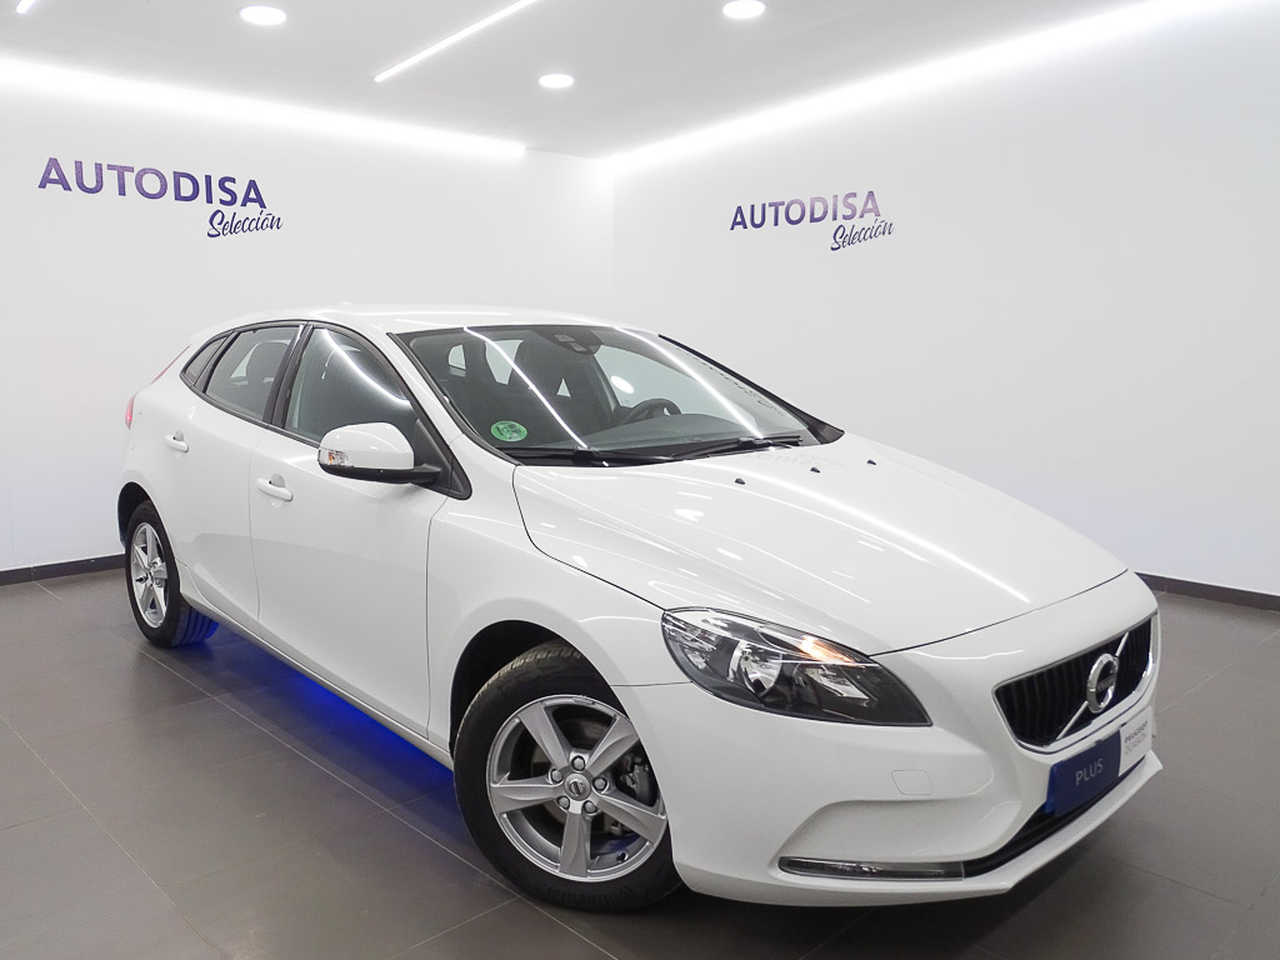 Volvo V40 2.0 KINETIC 2.0 120CV MT6 E6